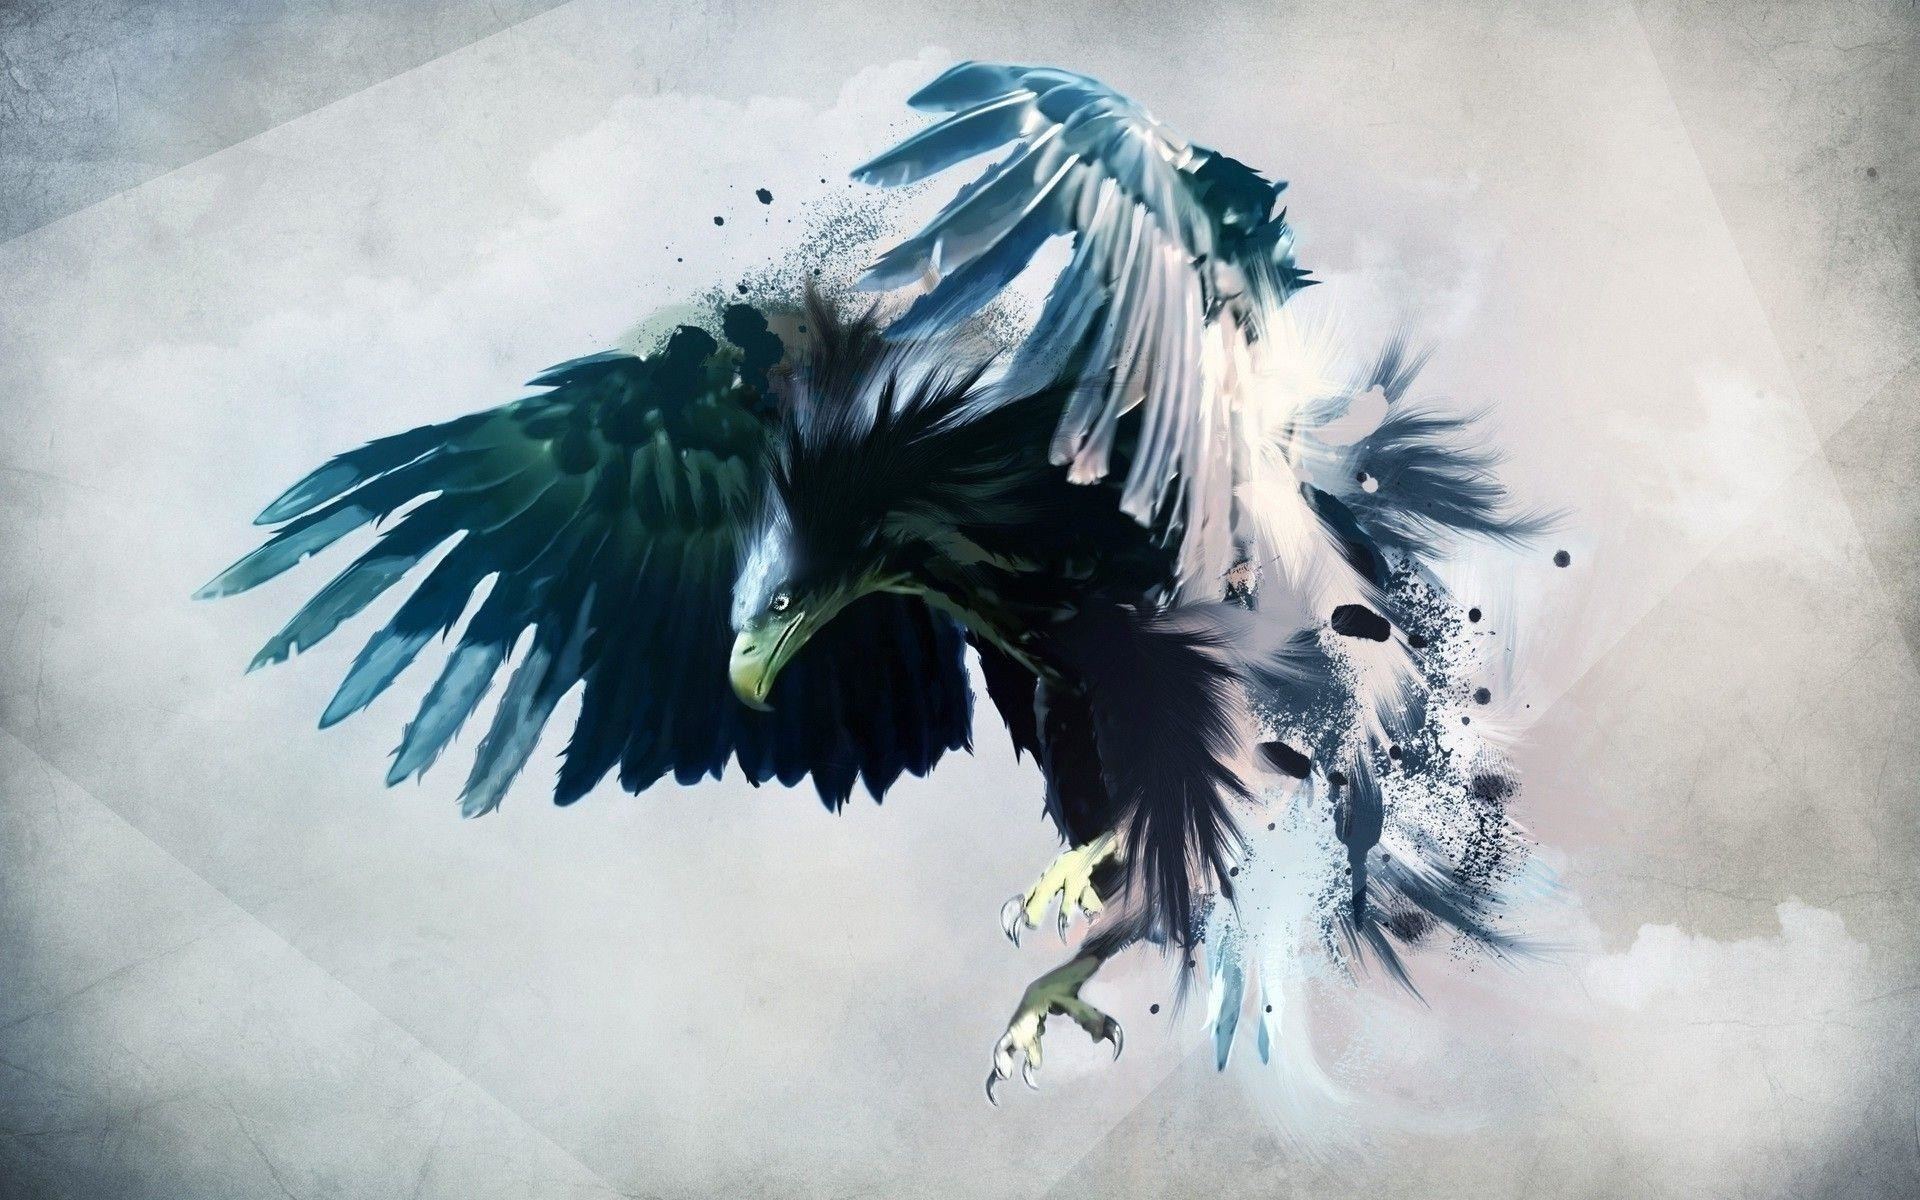 Abstract Eagle Wallpaper 4k